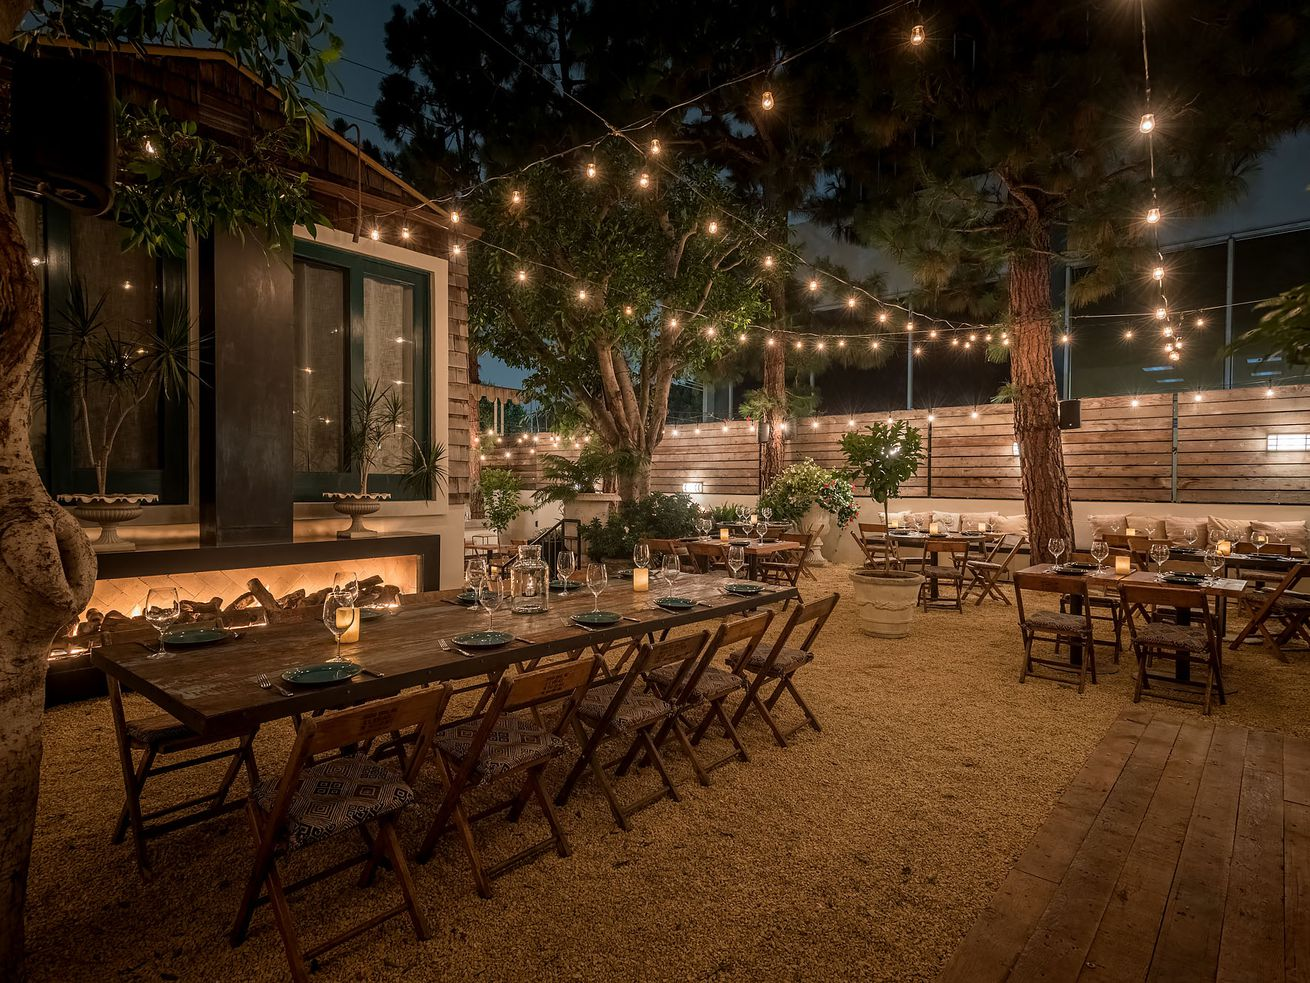 A dark patio with string lights, rocky ground, and a wooden table.